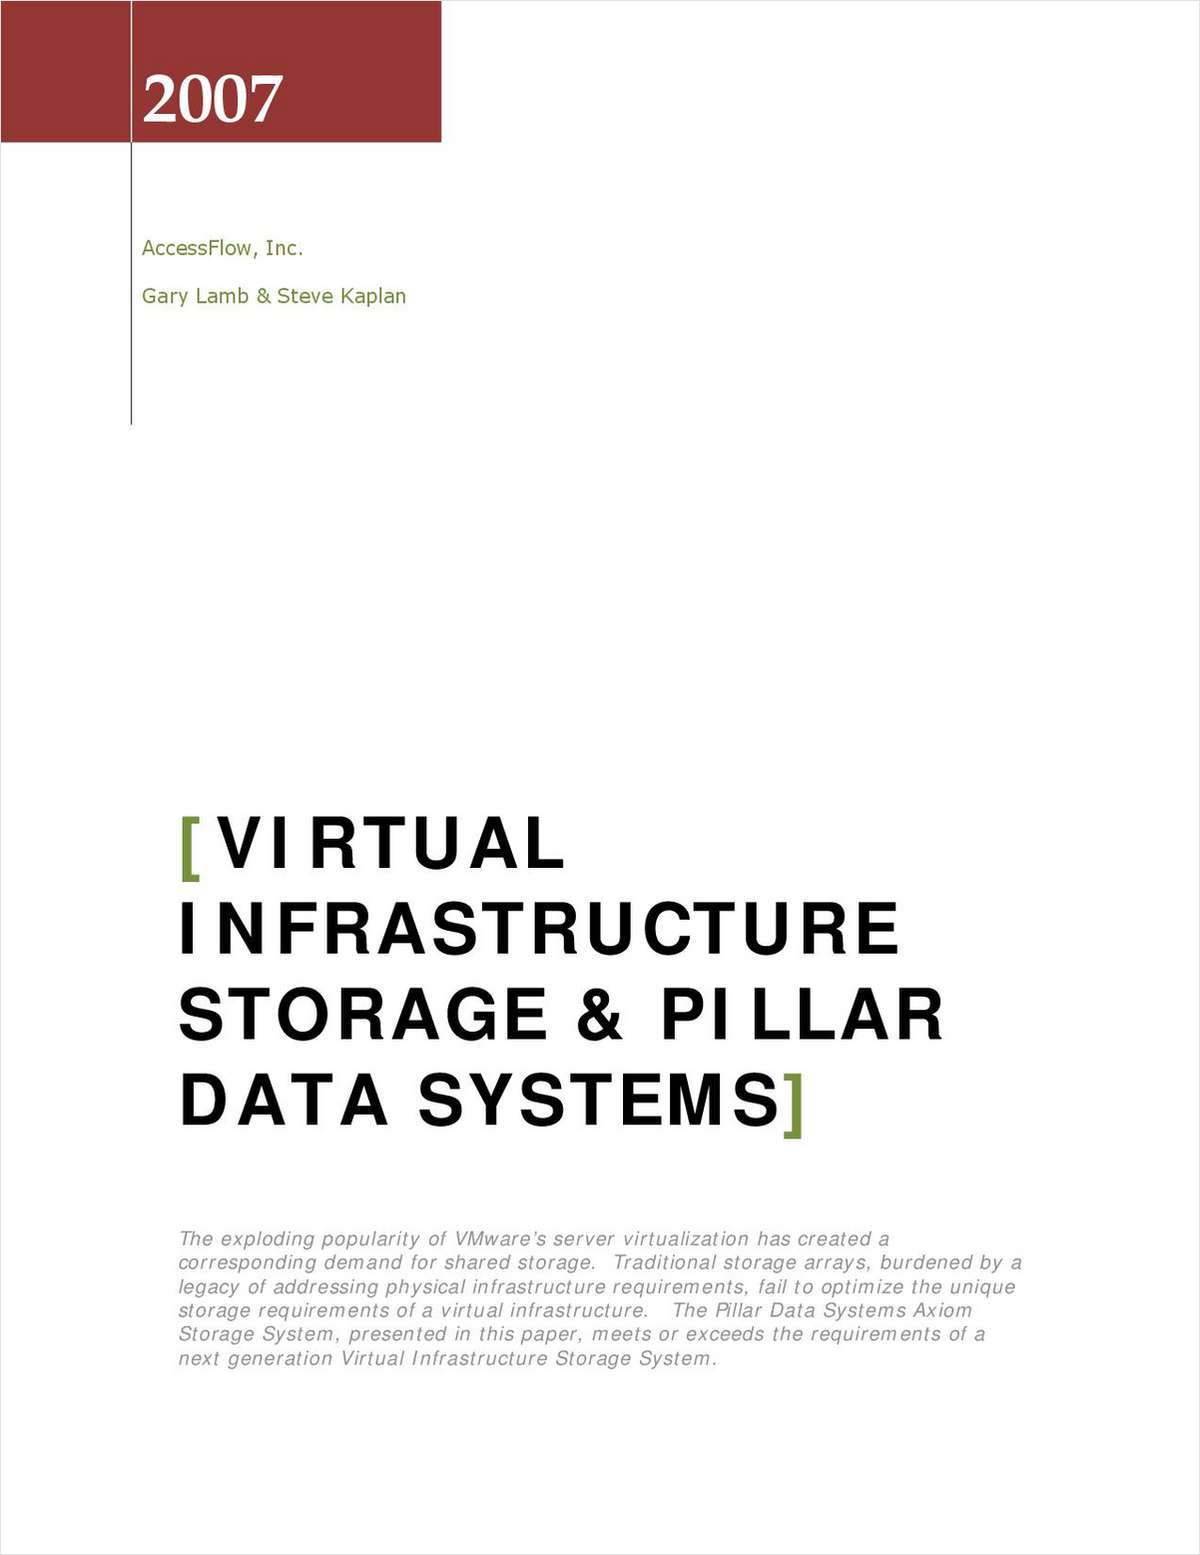 Virtual Infrastructure Storage